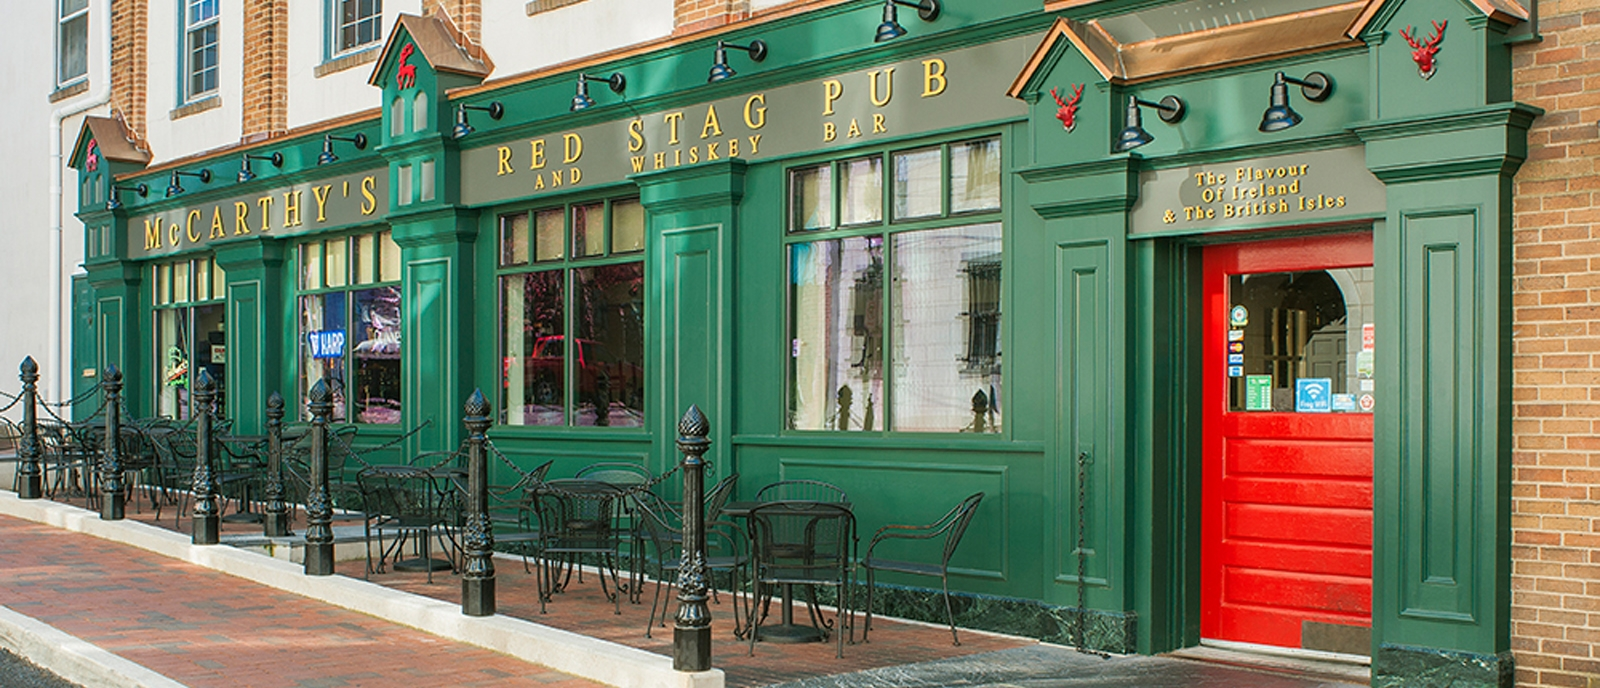 McCarthy's Red Stag Pub (Patty-o)